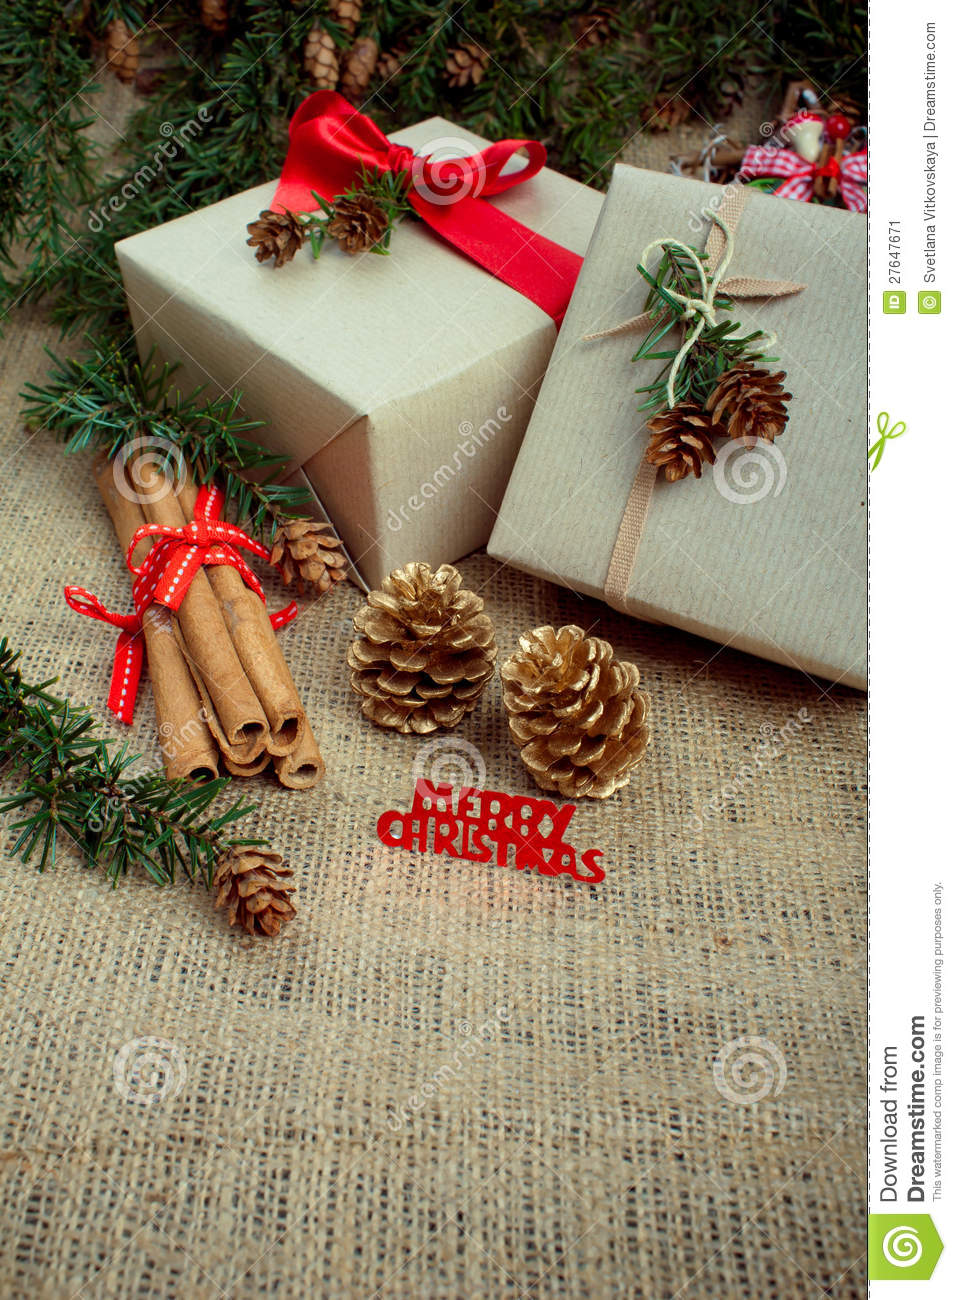 christmas gift boxes and decorations rustic style